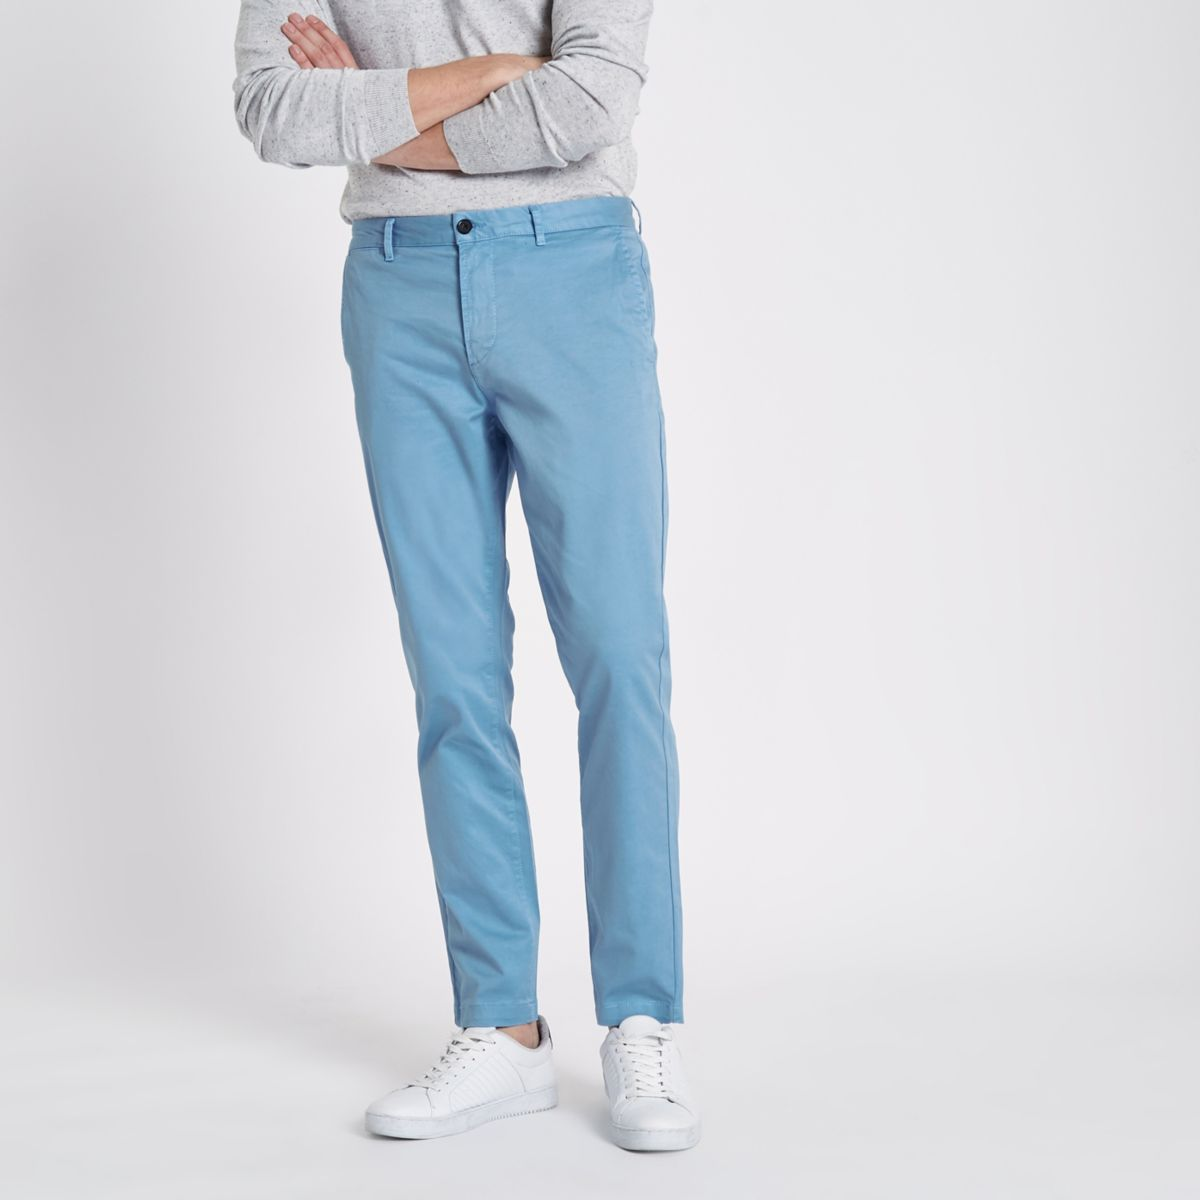 pajama soft cotton for comfy lounge pyjama comfort pants unparalleled khasto light bottoms men blue